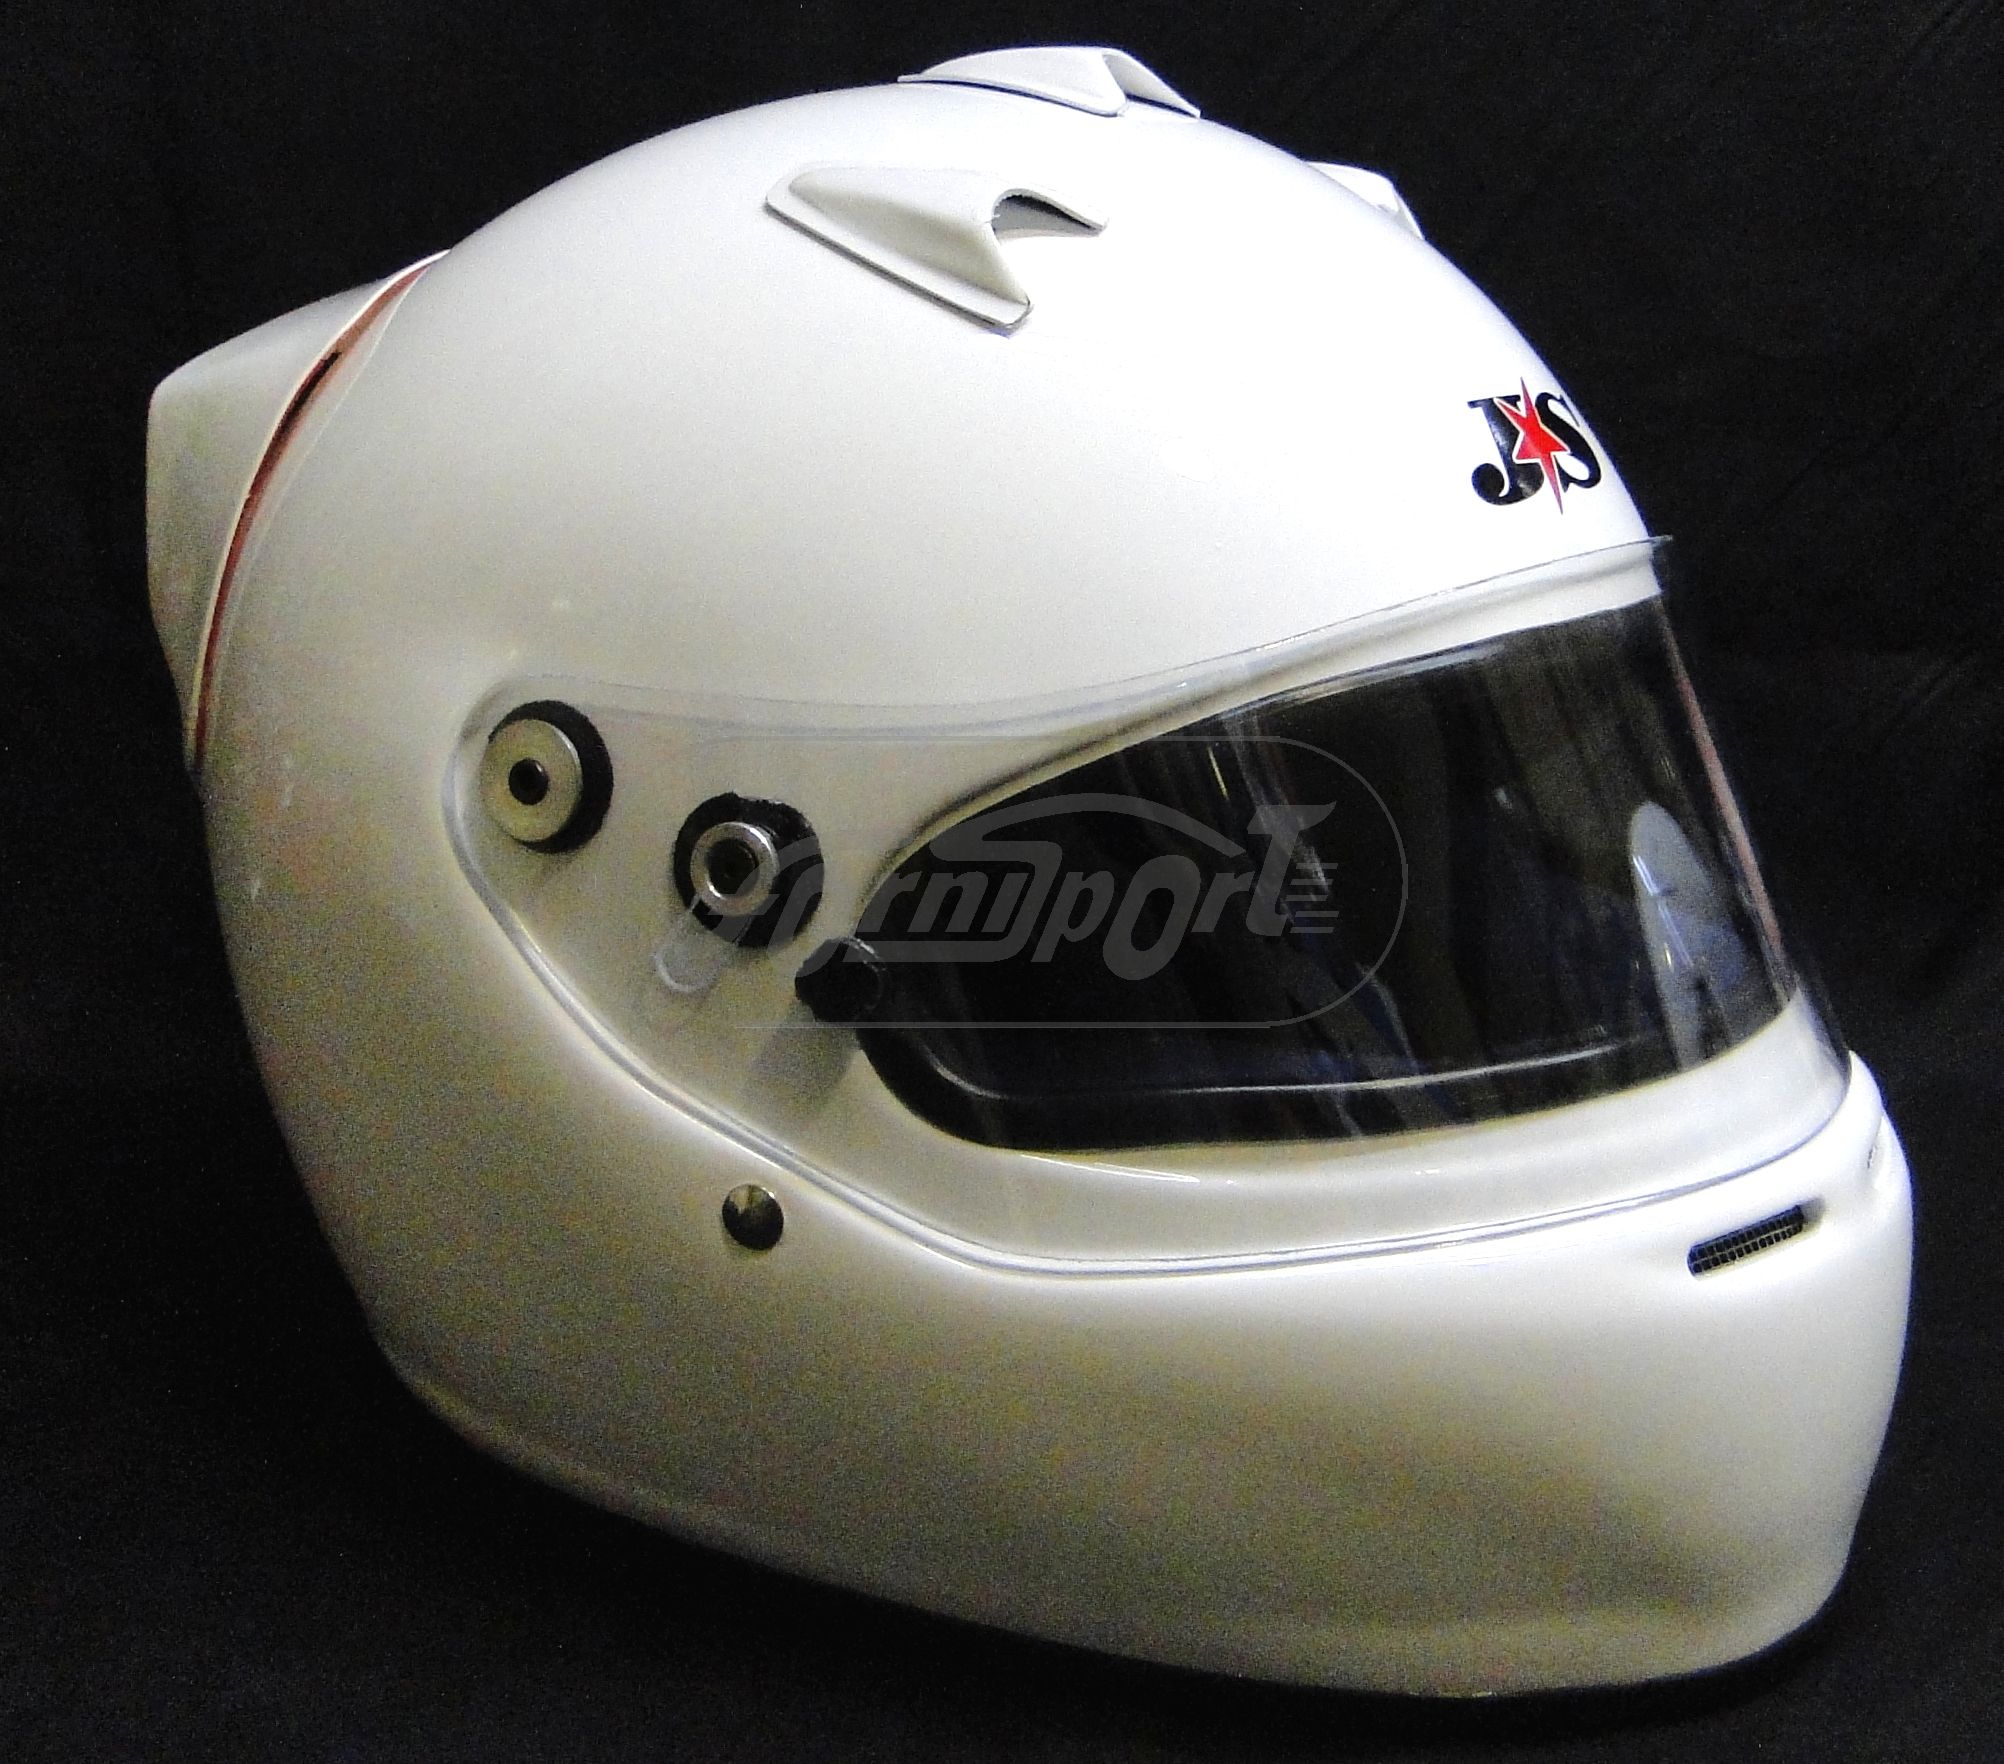 Casco Integral  J*S  Racing   T 54 A 5 con Alerón